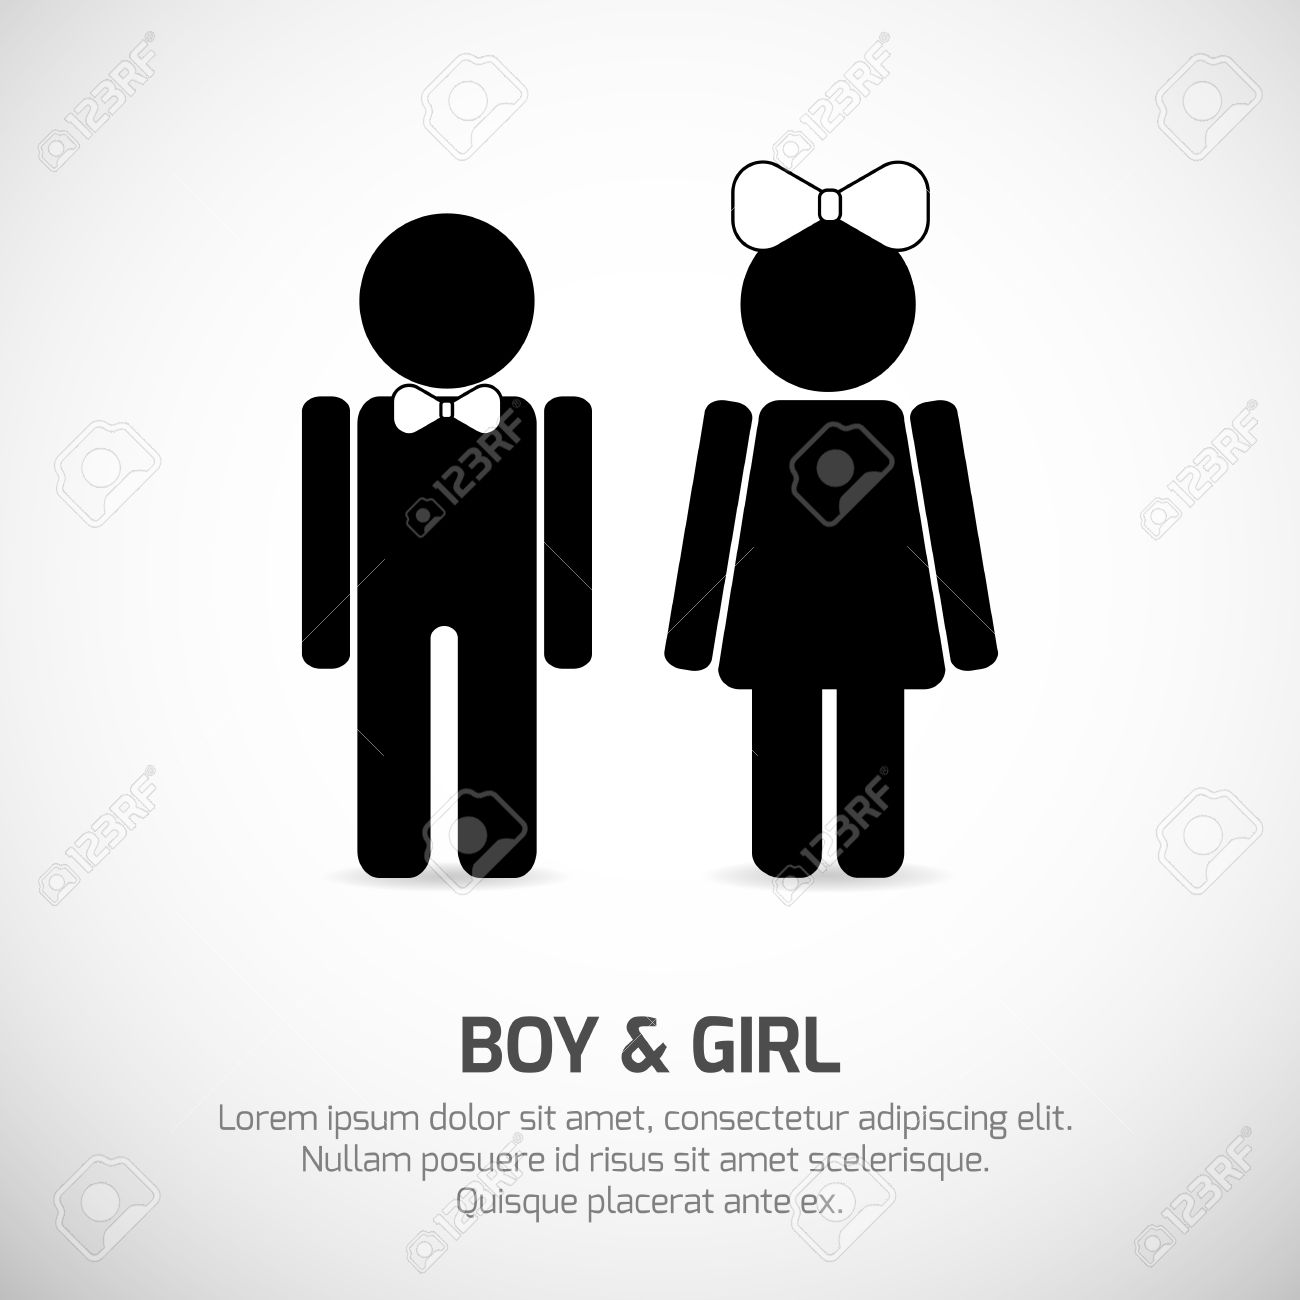 Boy and girl symbols vector signs for stecifying gender can boy and girl symbols vector signs for stecifying gender can be used for restroom buycottarizona